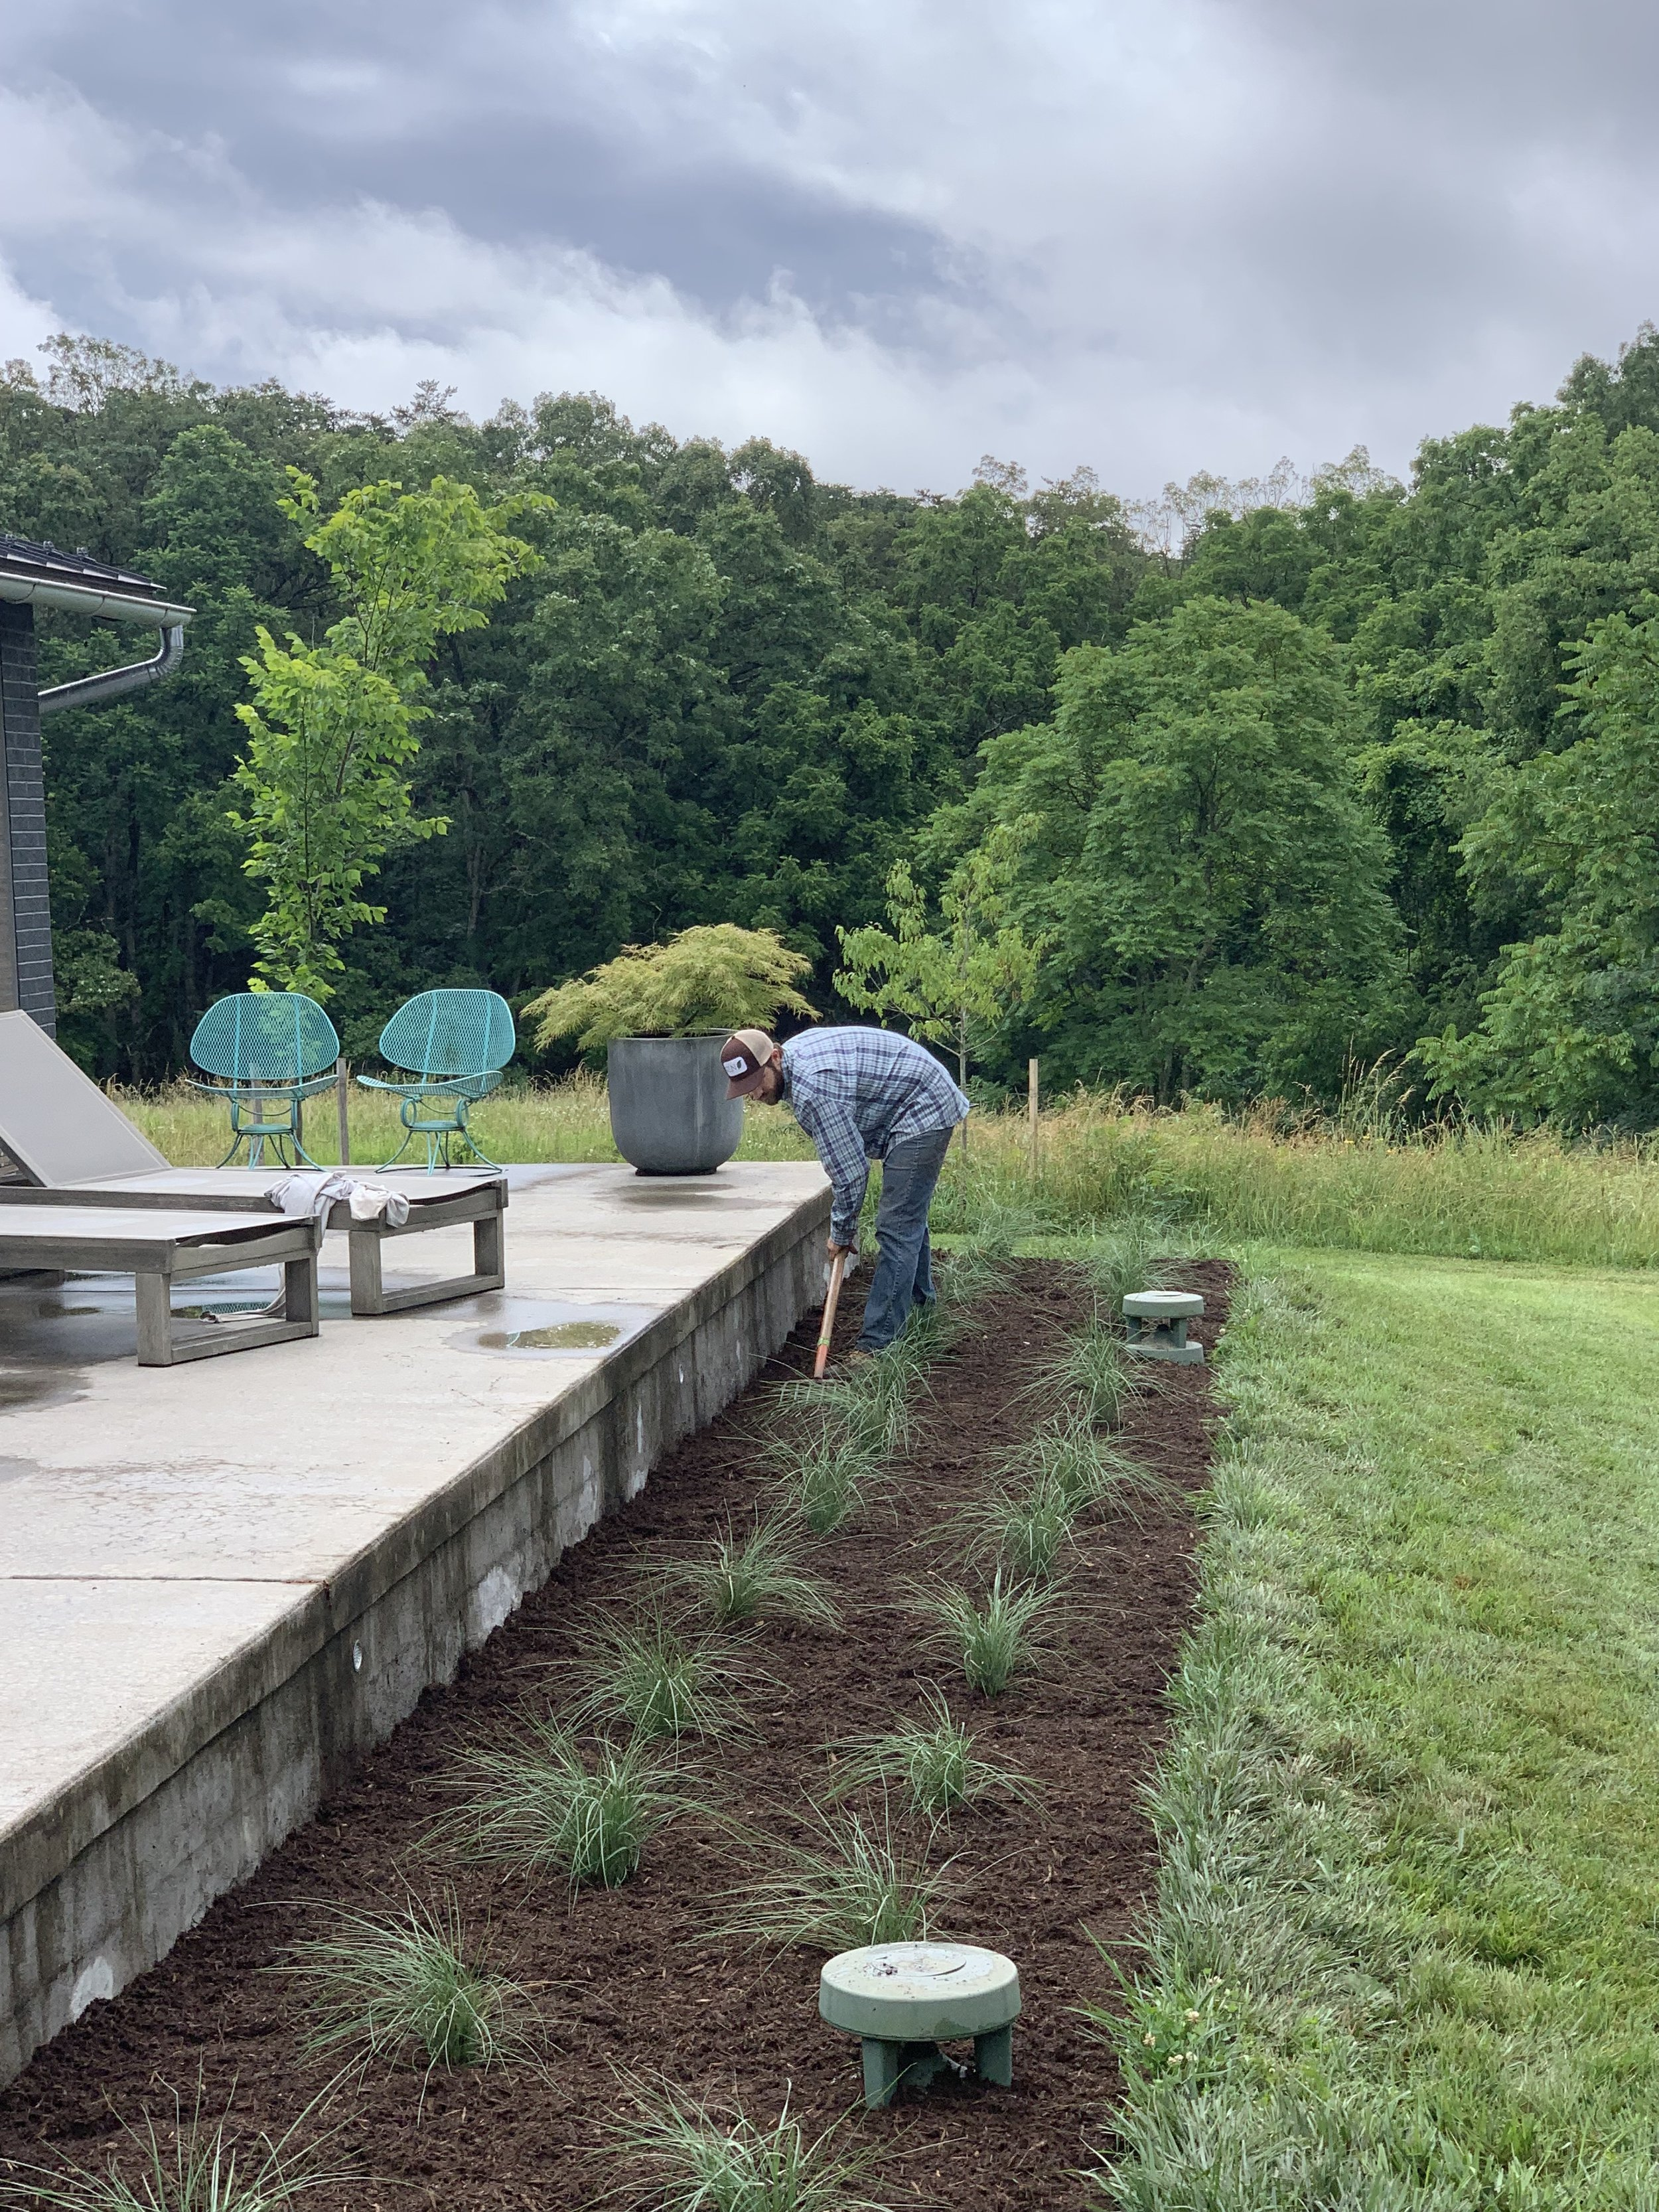 Construction process photo : Finishing touches being put on new White Cloud Muhlenburgia Grass plantings by landscape installation contractor - planting of building foundation planting plan / summer 2019.